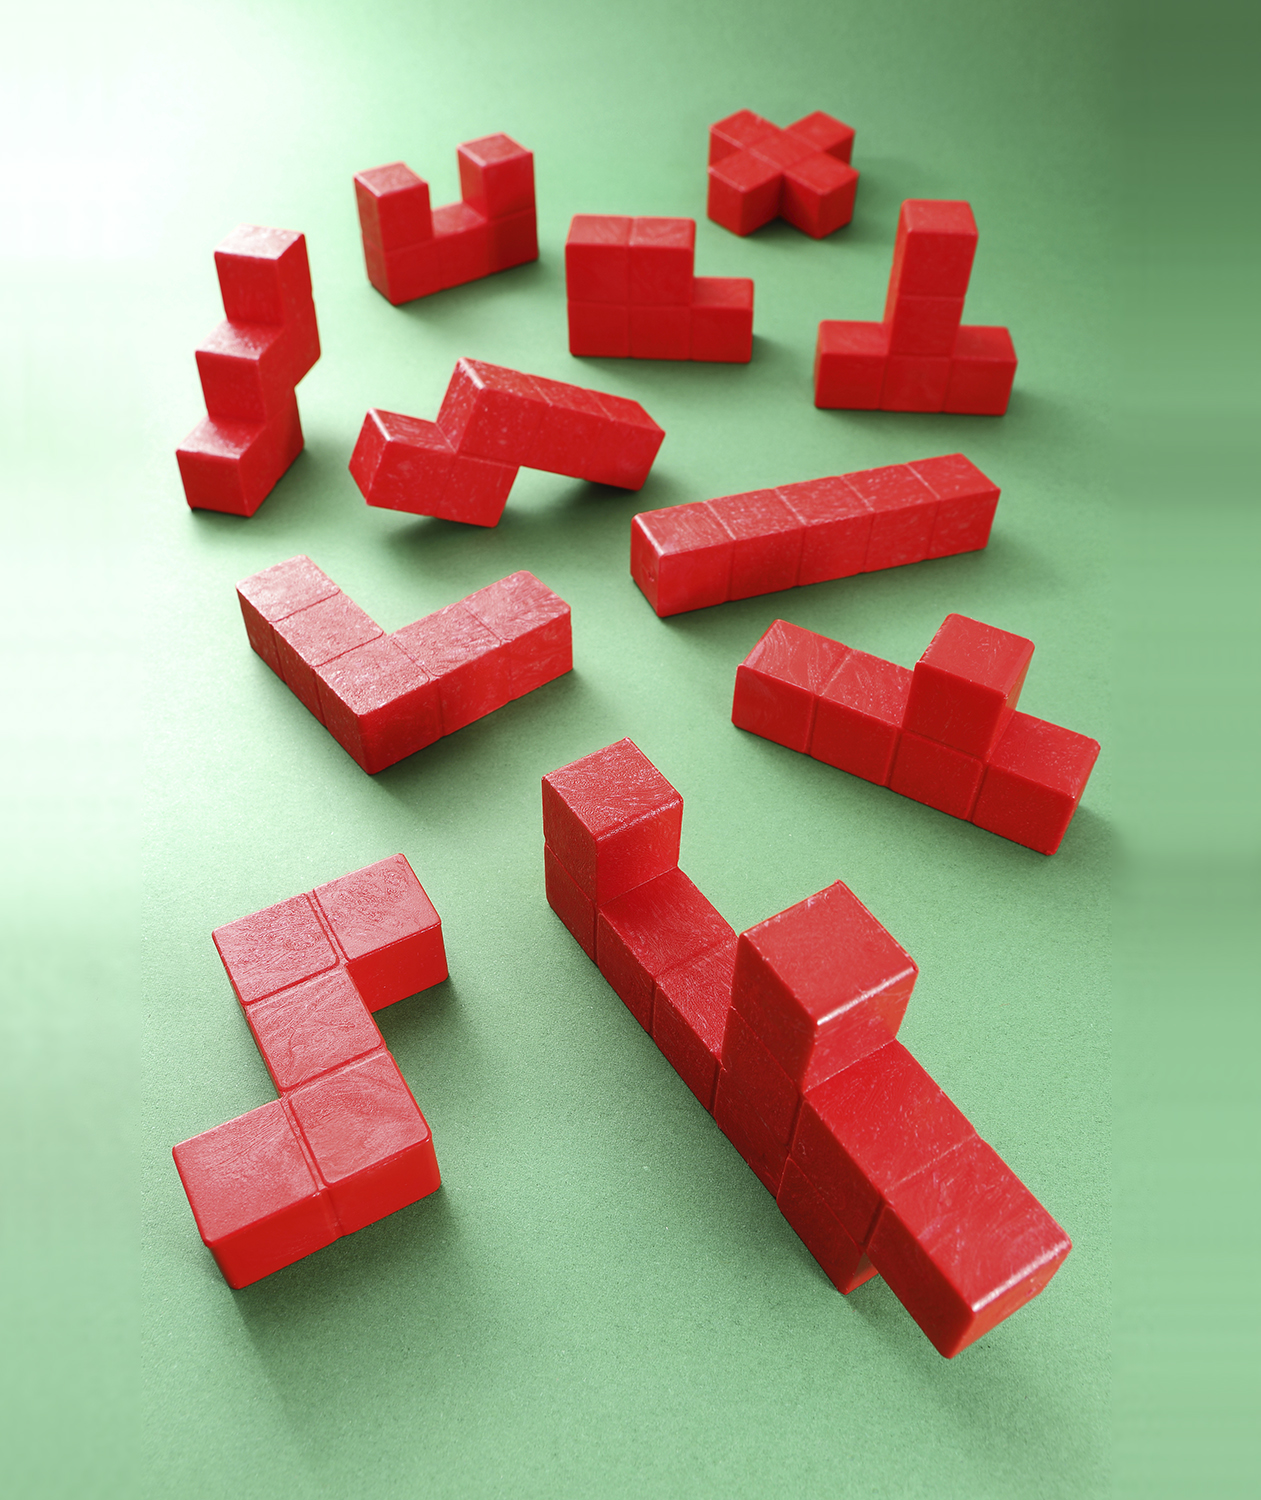 red-tetris-pieces-green-background